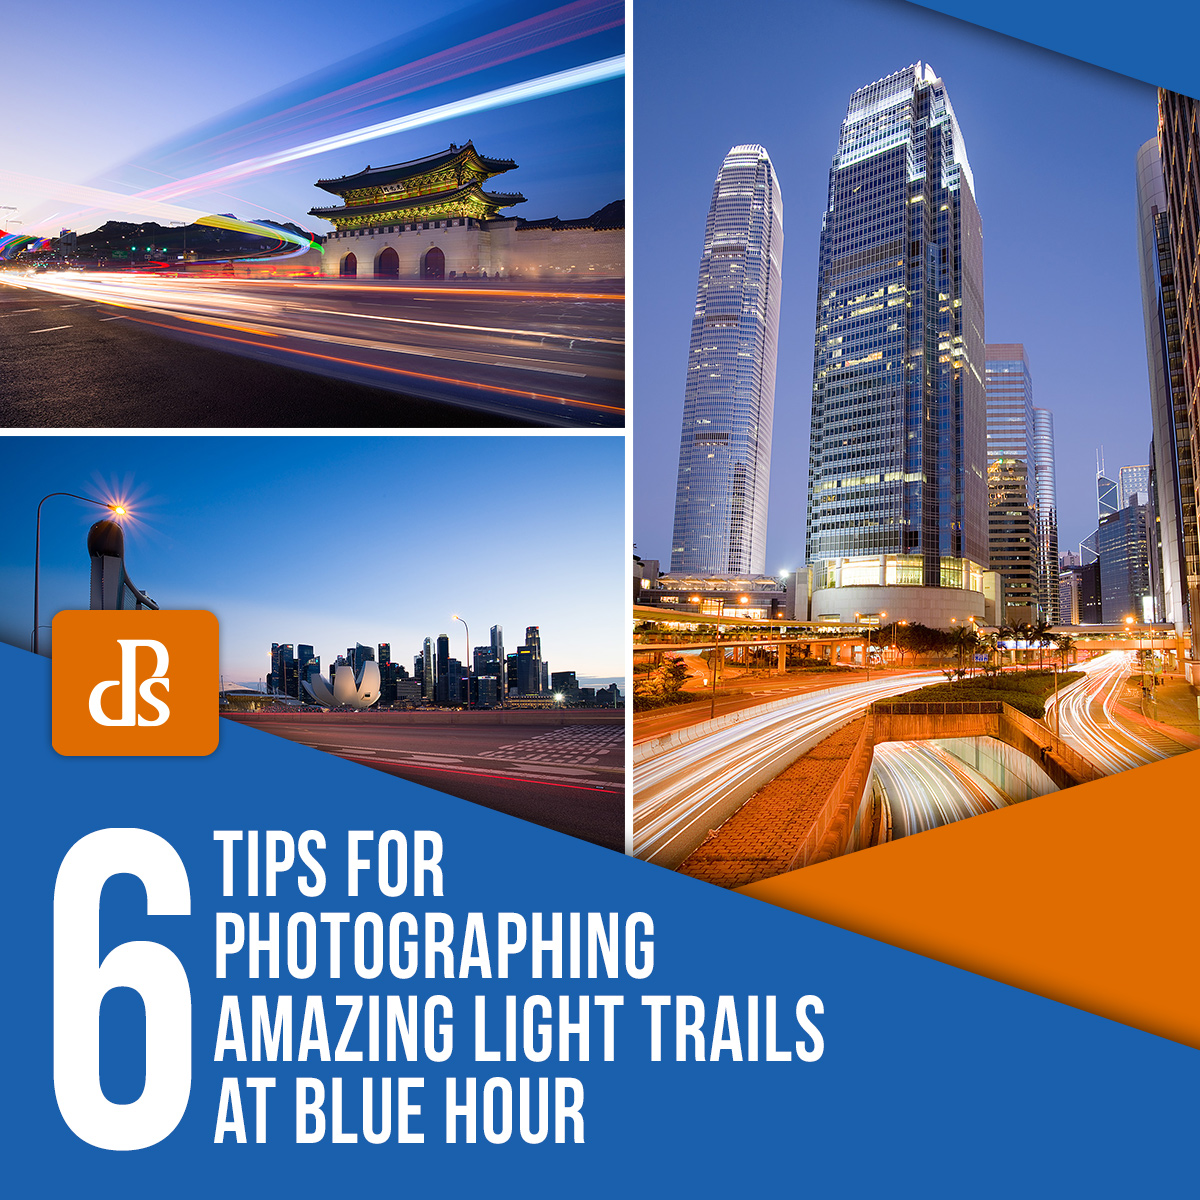 6 Tips for Photographing Amazing Light Trails at Blue Hour